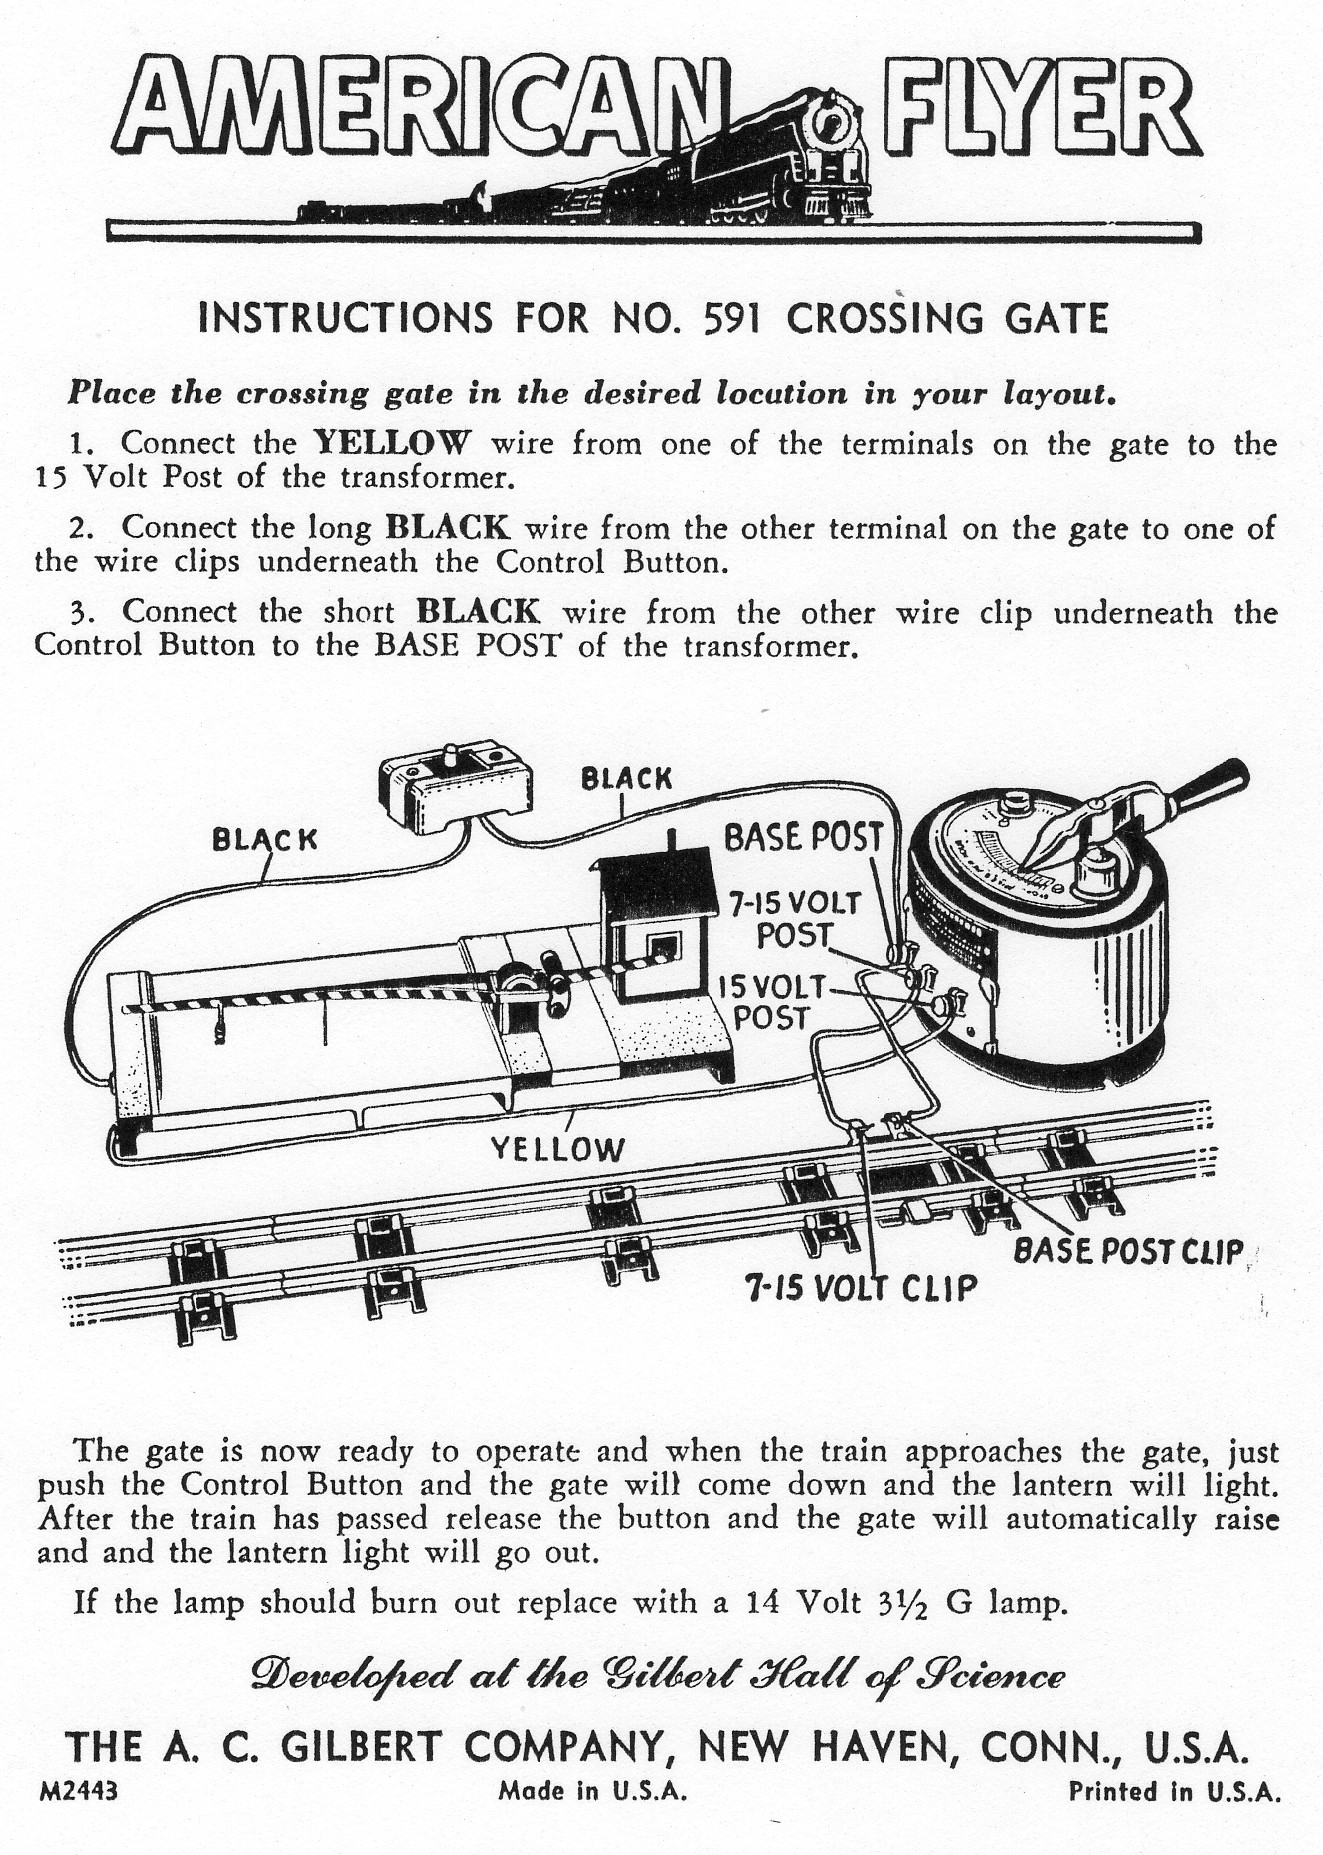 American Flyer Steam Engine Wiring Diagram American Flyer Wiring Seatle Davidjoel Of American Flyer Steam Engine Wiring Diagram